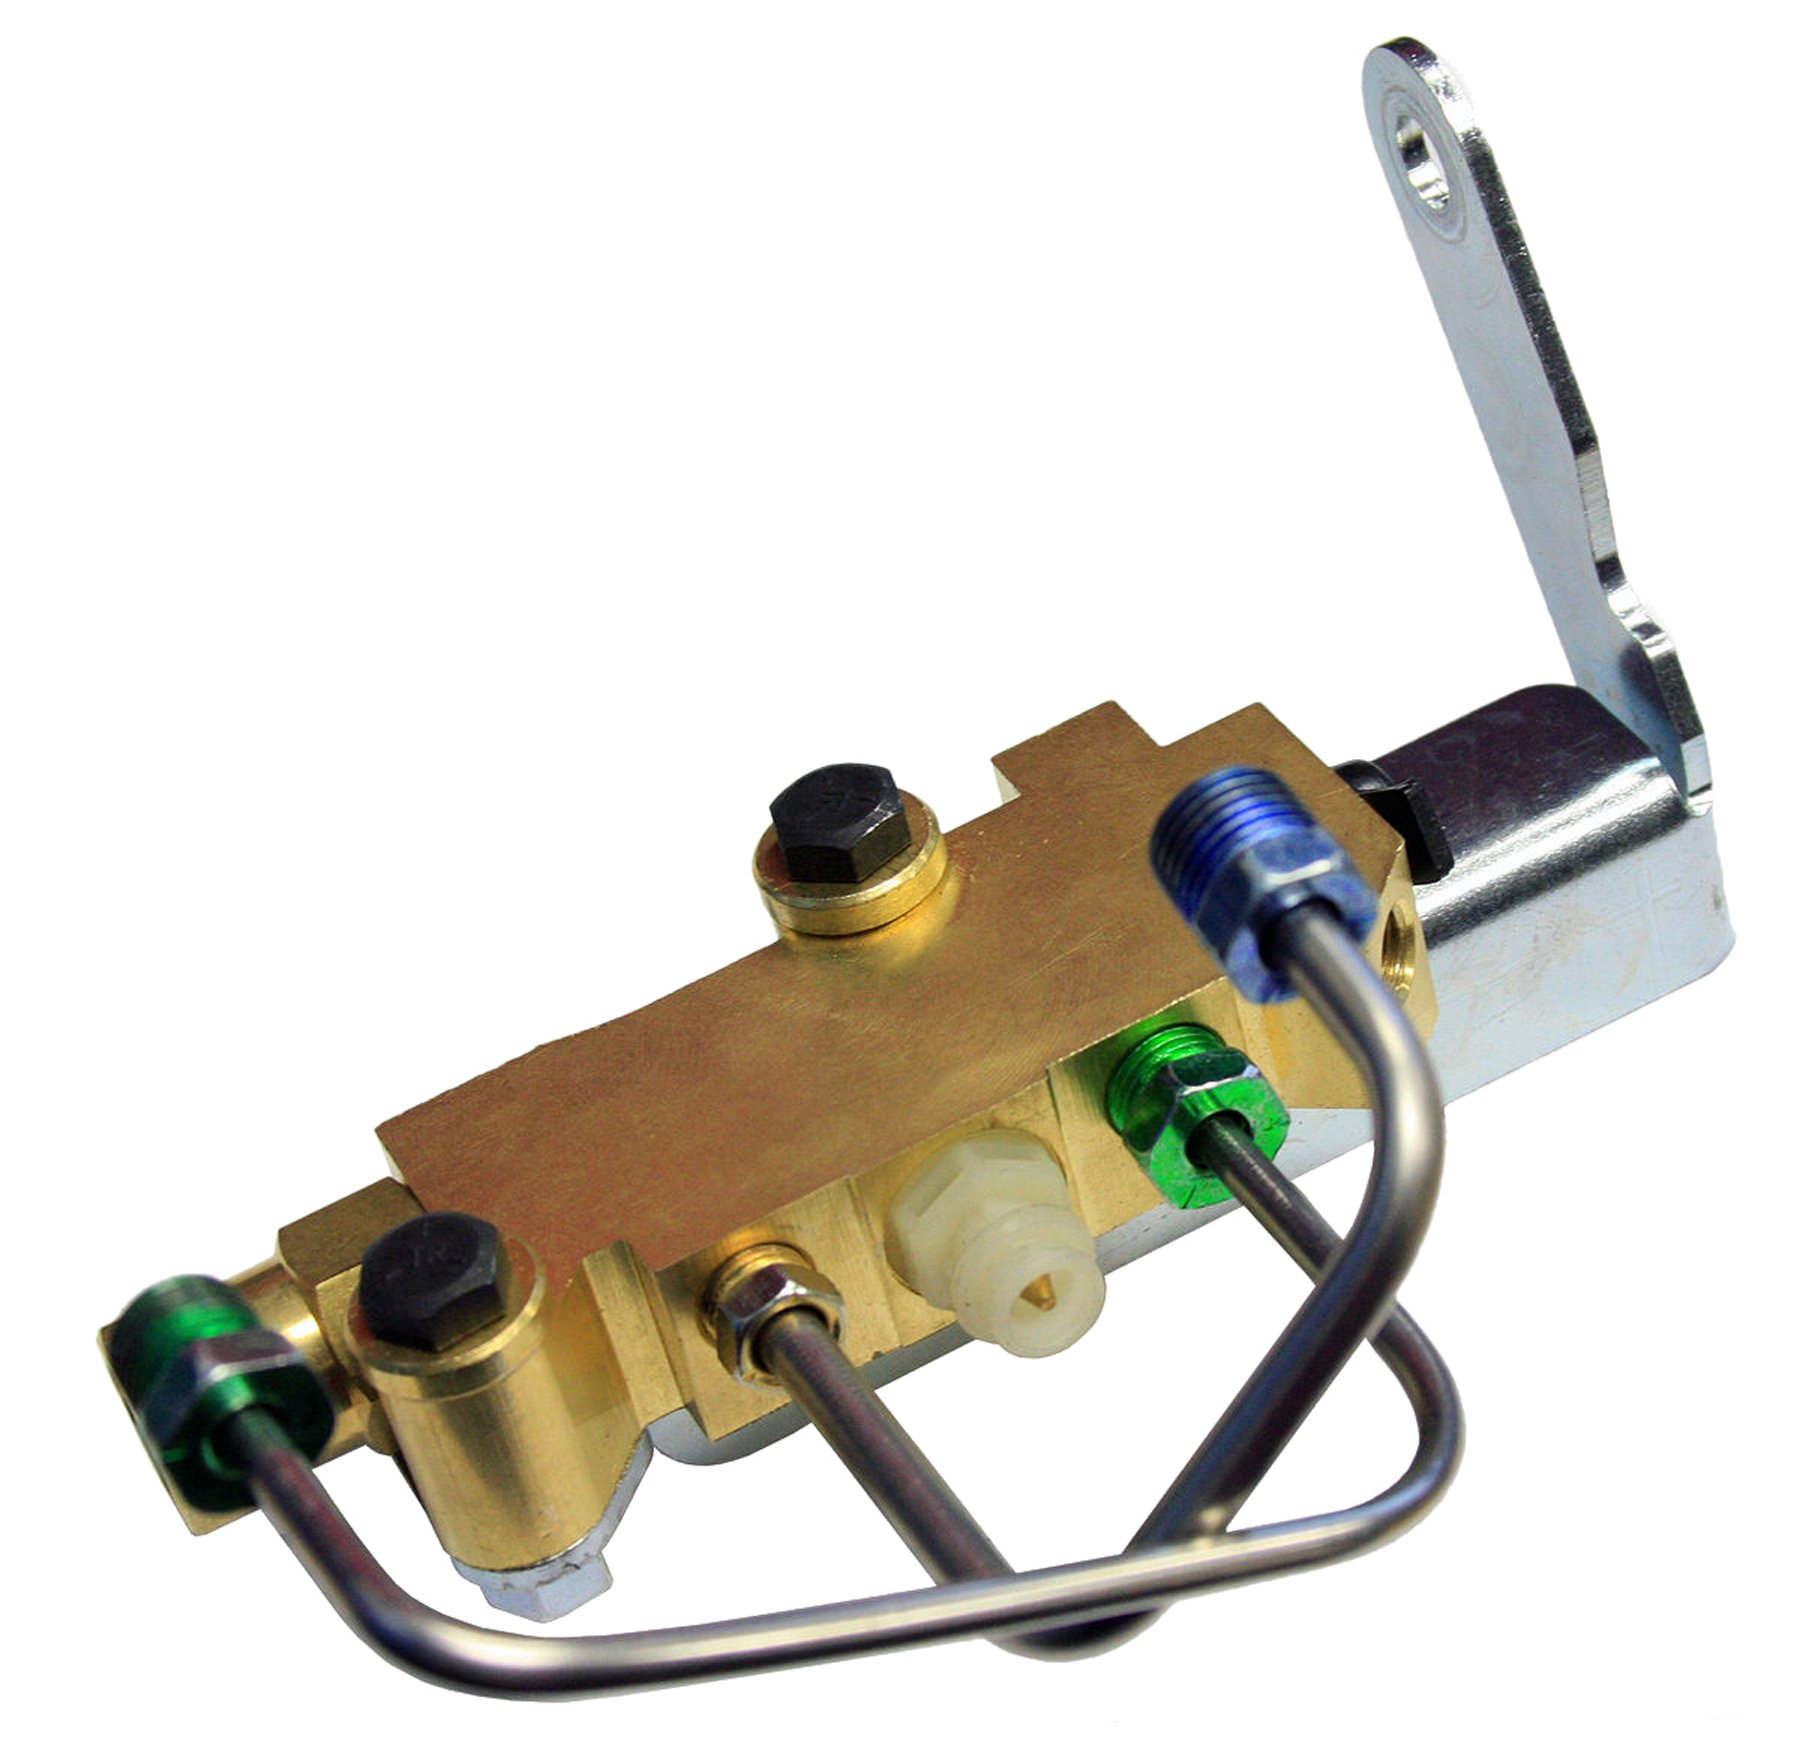 (E-6-8) Inline Tube Proportioning Valve, Bracket, and Lines Compatible with 1955-72 GM Front Disc Brake Conversion by Inline Tube